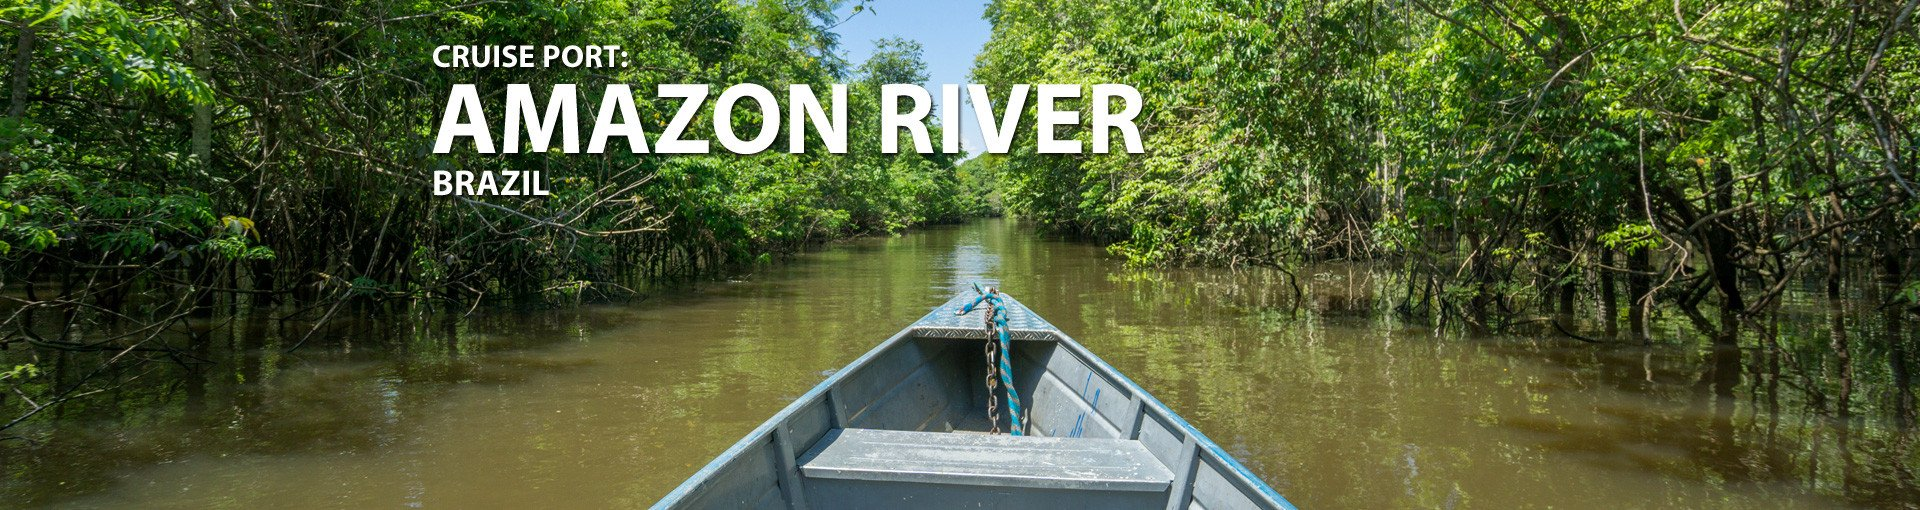 amazon-river-brazil-cruise-port-banner.jpg